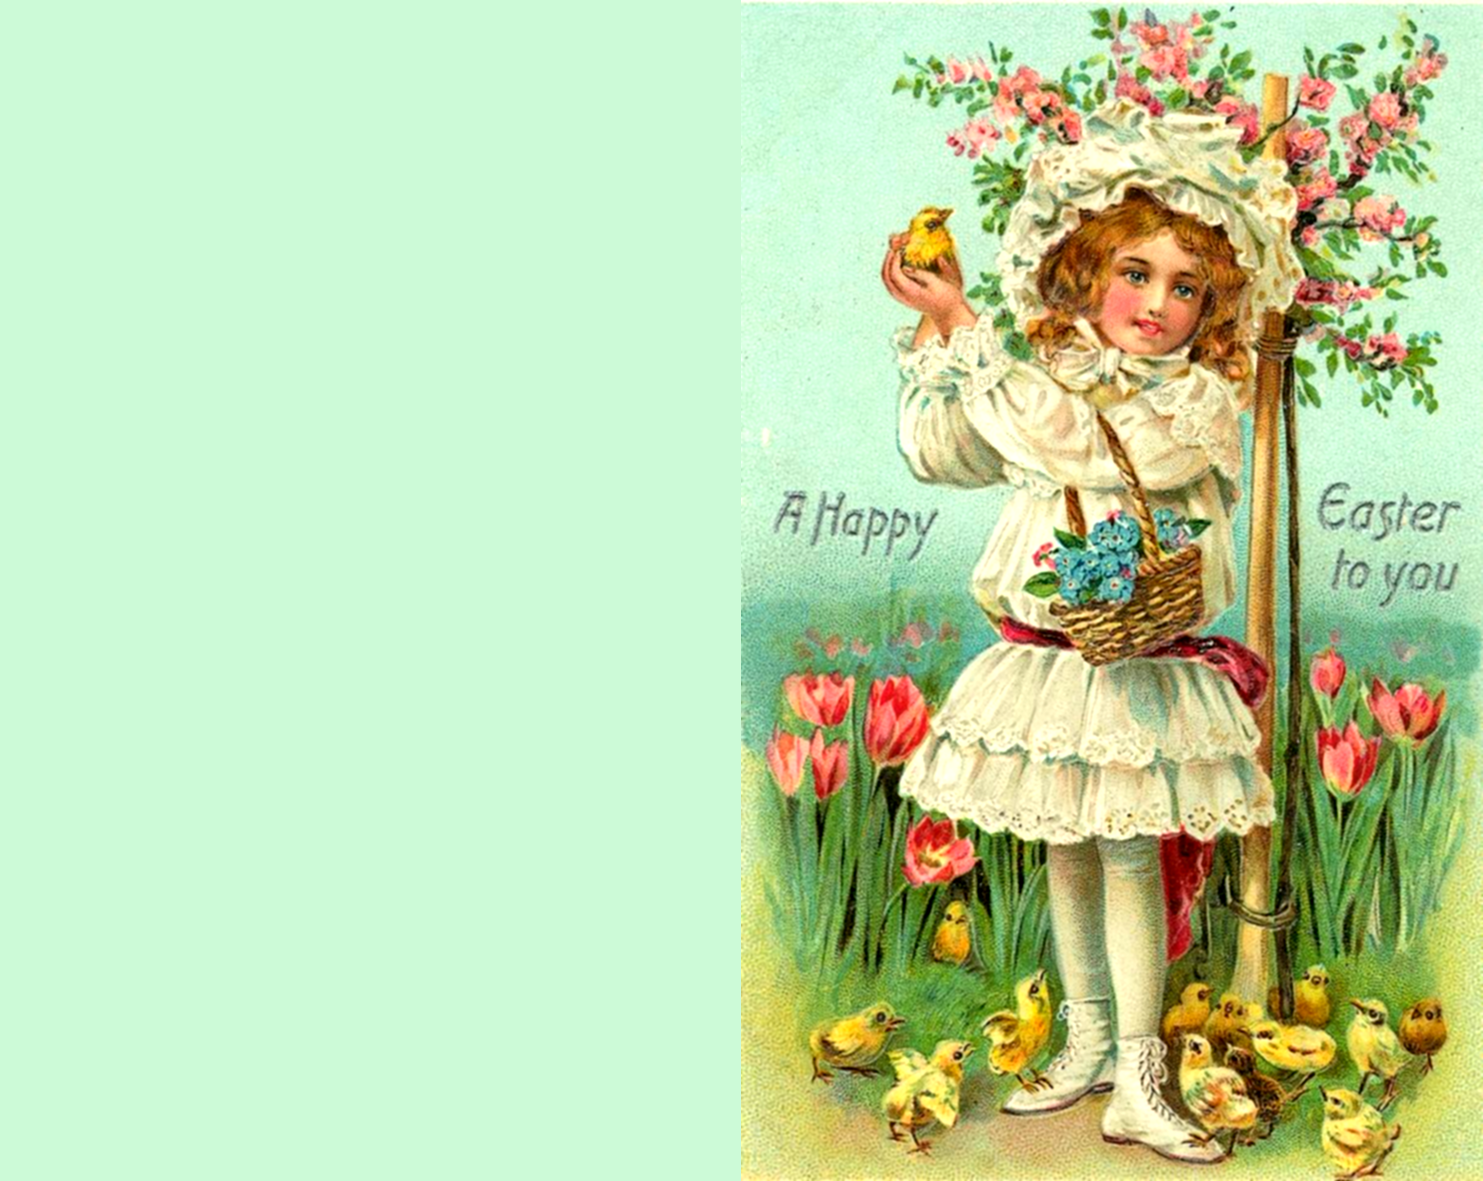 Old vintage Easter greeing card with little girl, flowers and chickens.